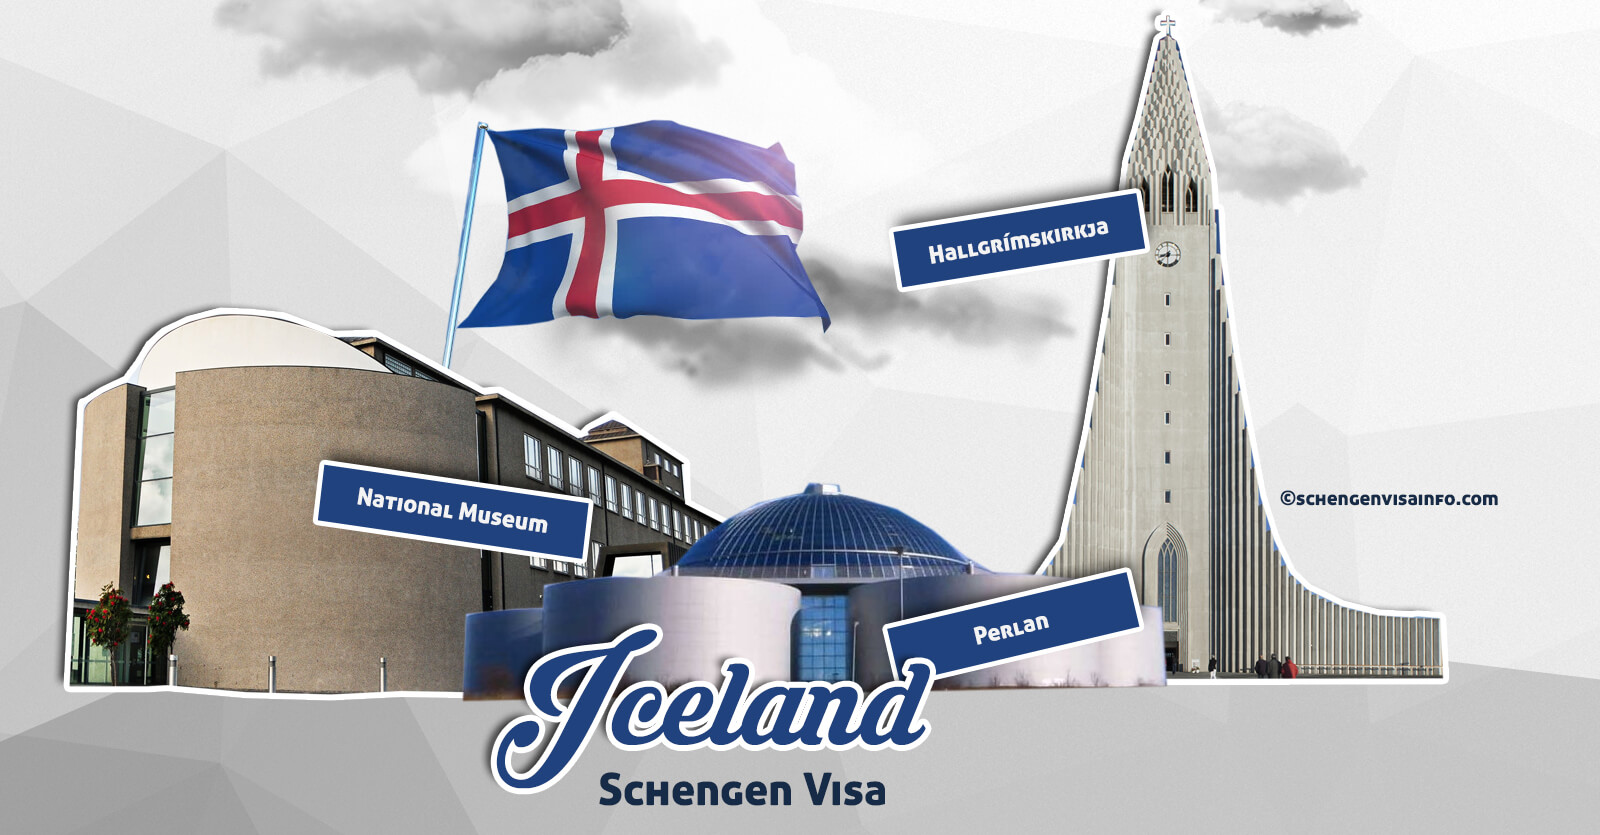 Iceland Schengen Visa Types, Requirements, Application